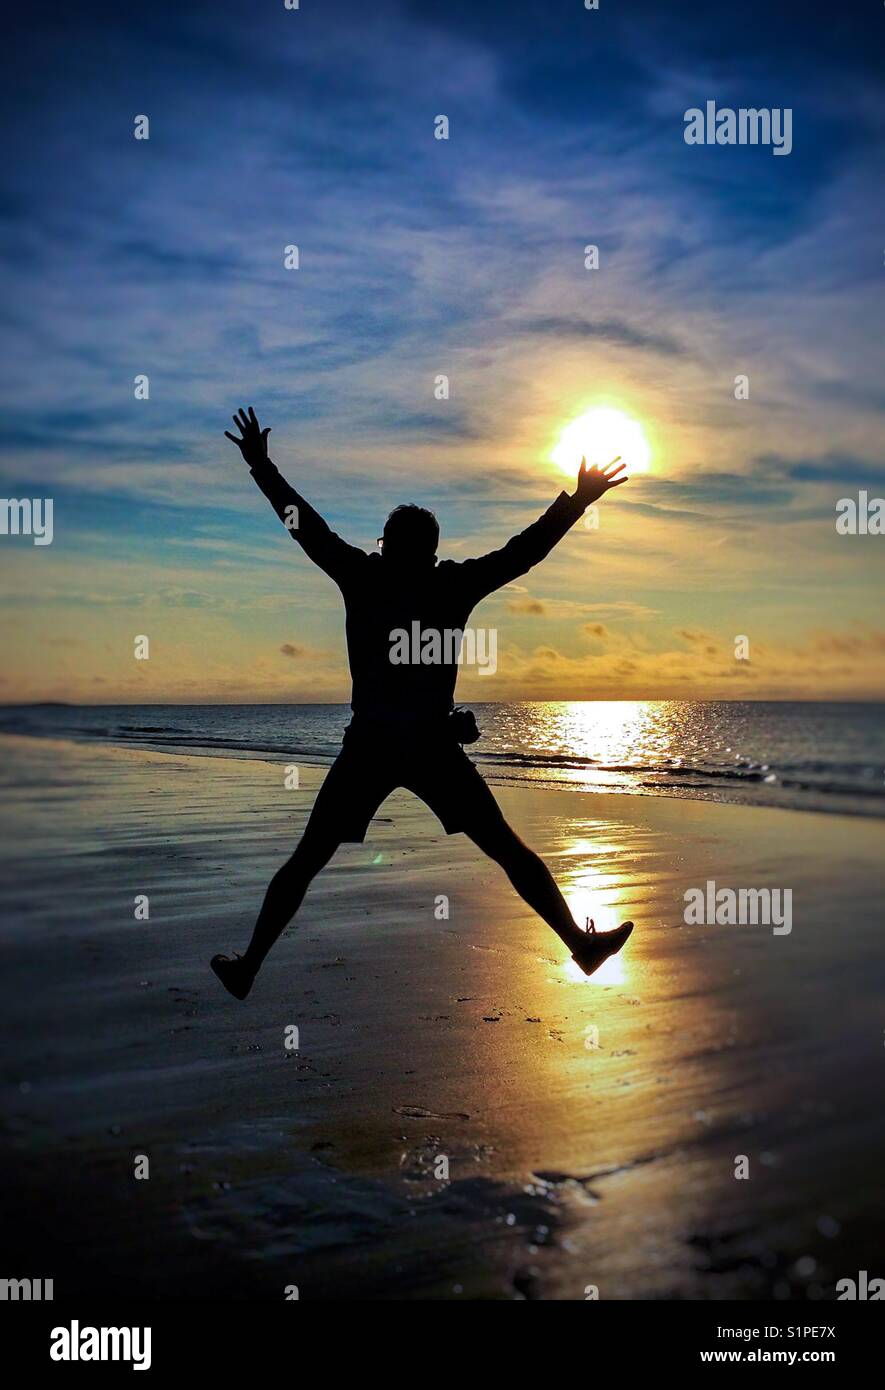 The silhouette of a man jumping high in the air on a sunlit beach at sunset with the ocean behind. - Stock Image